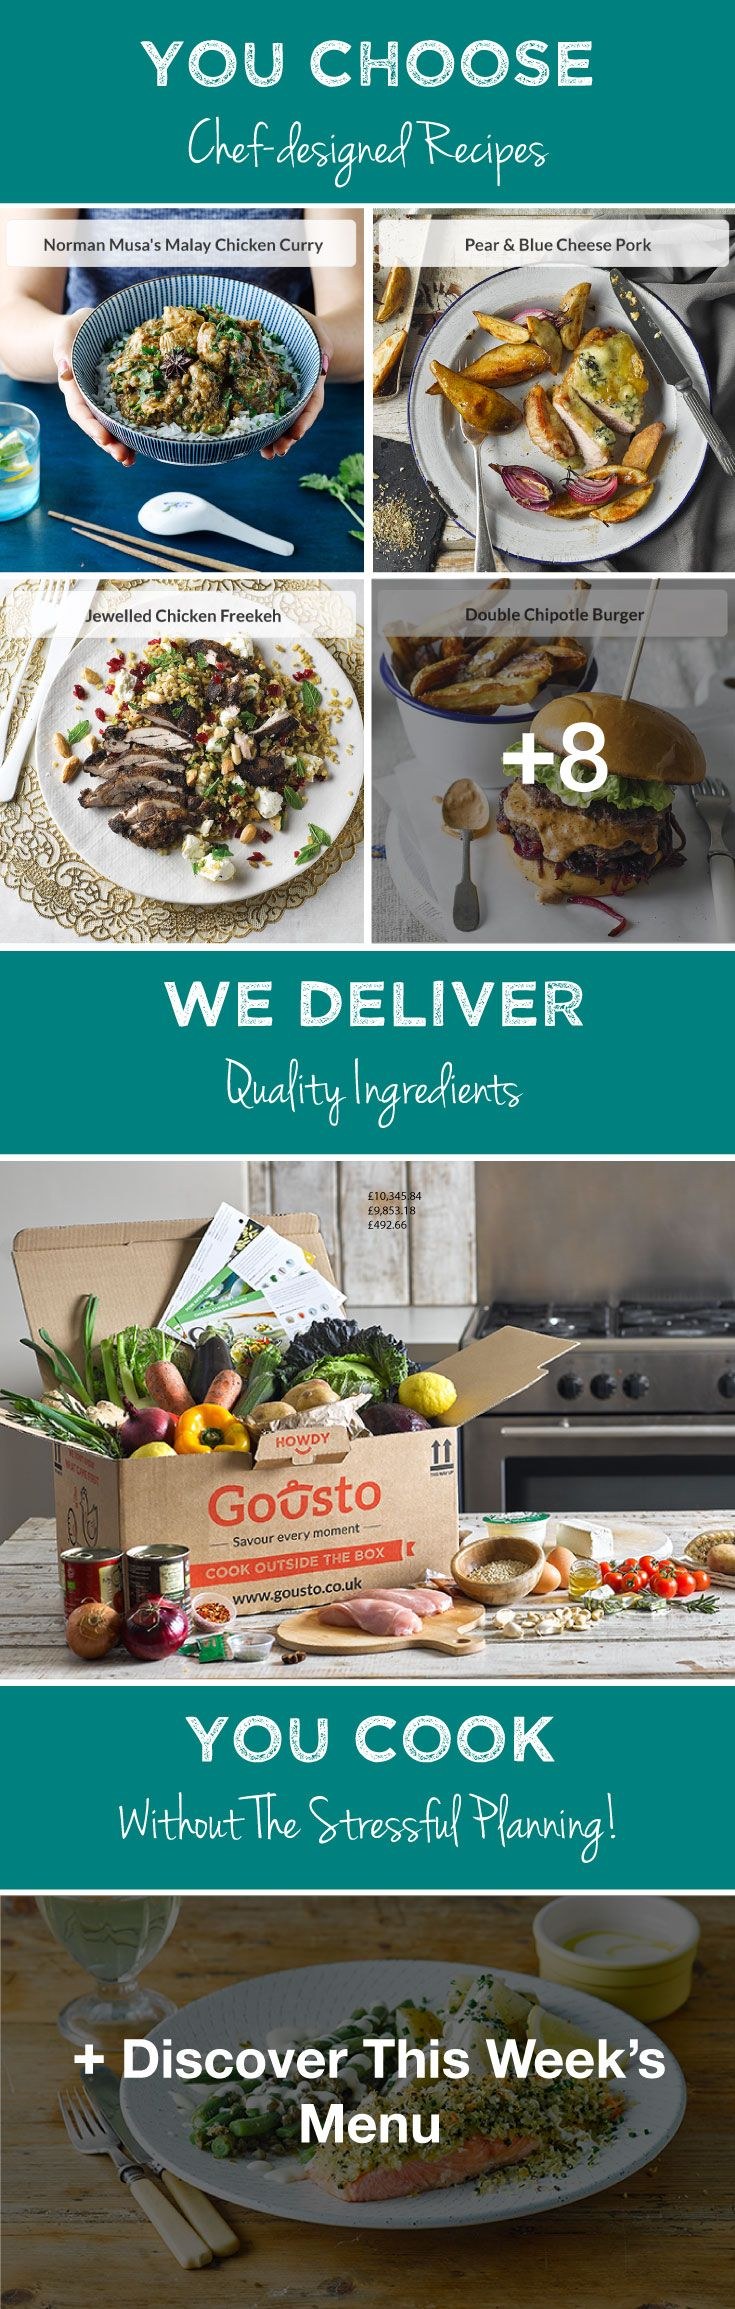 54 best now youre cooking images on pinterest clean eating choose recipes and get fresh ingredients delivered to your door our award winning food boxes include free delivery enjoy a new menu each week forumfinder Gallery